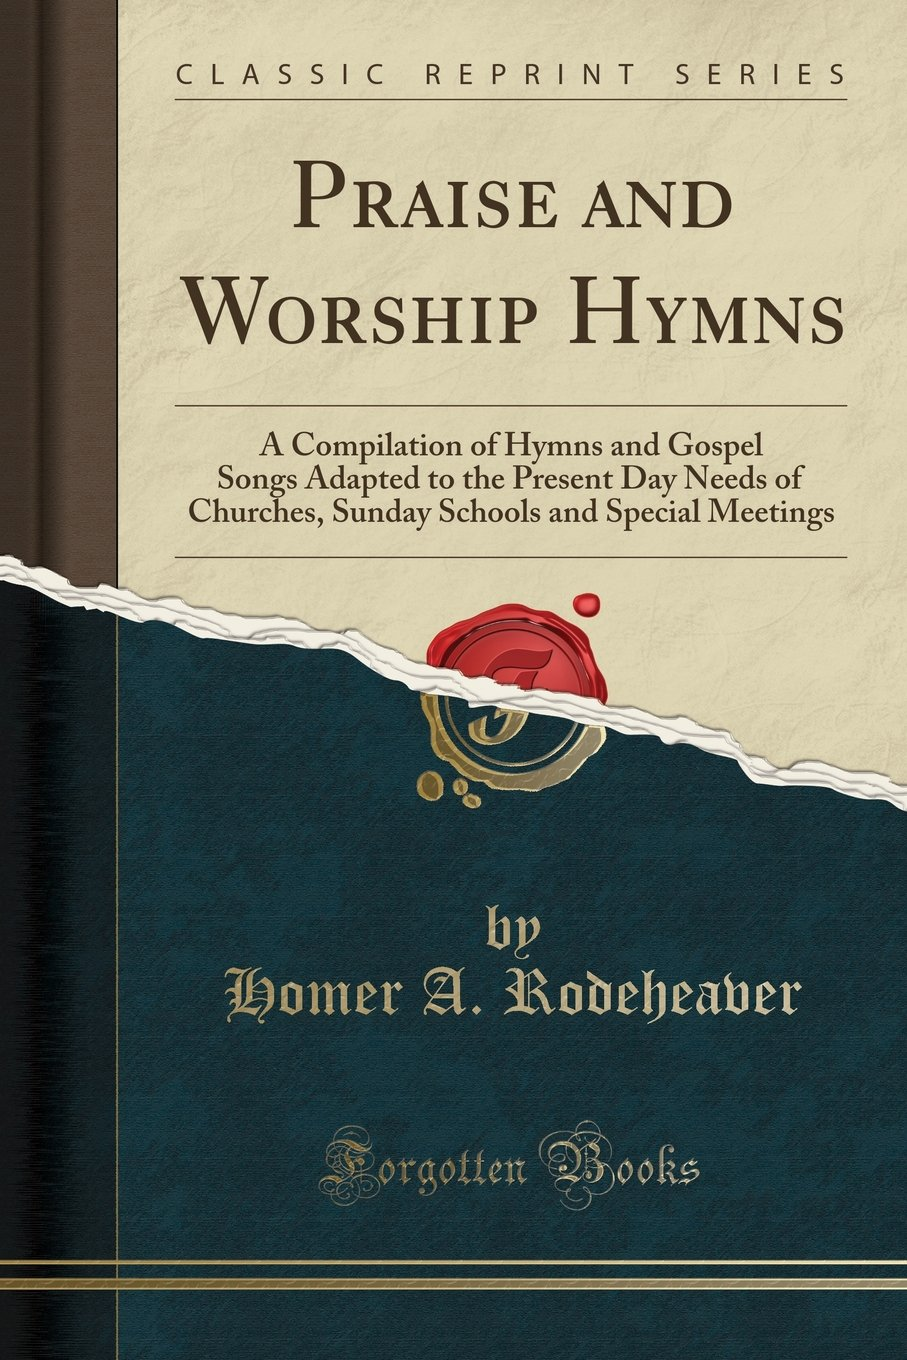 Praise and Worship Hymns: A Compilation of Hymns and Gospel Songs